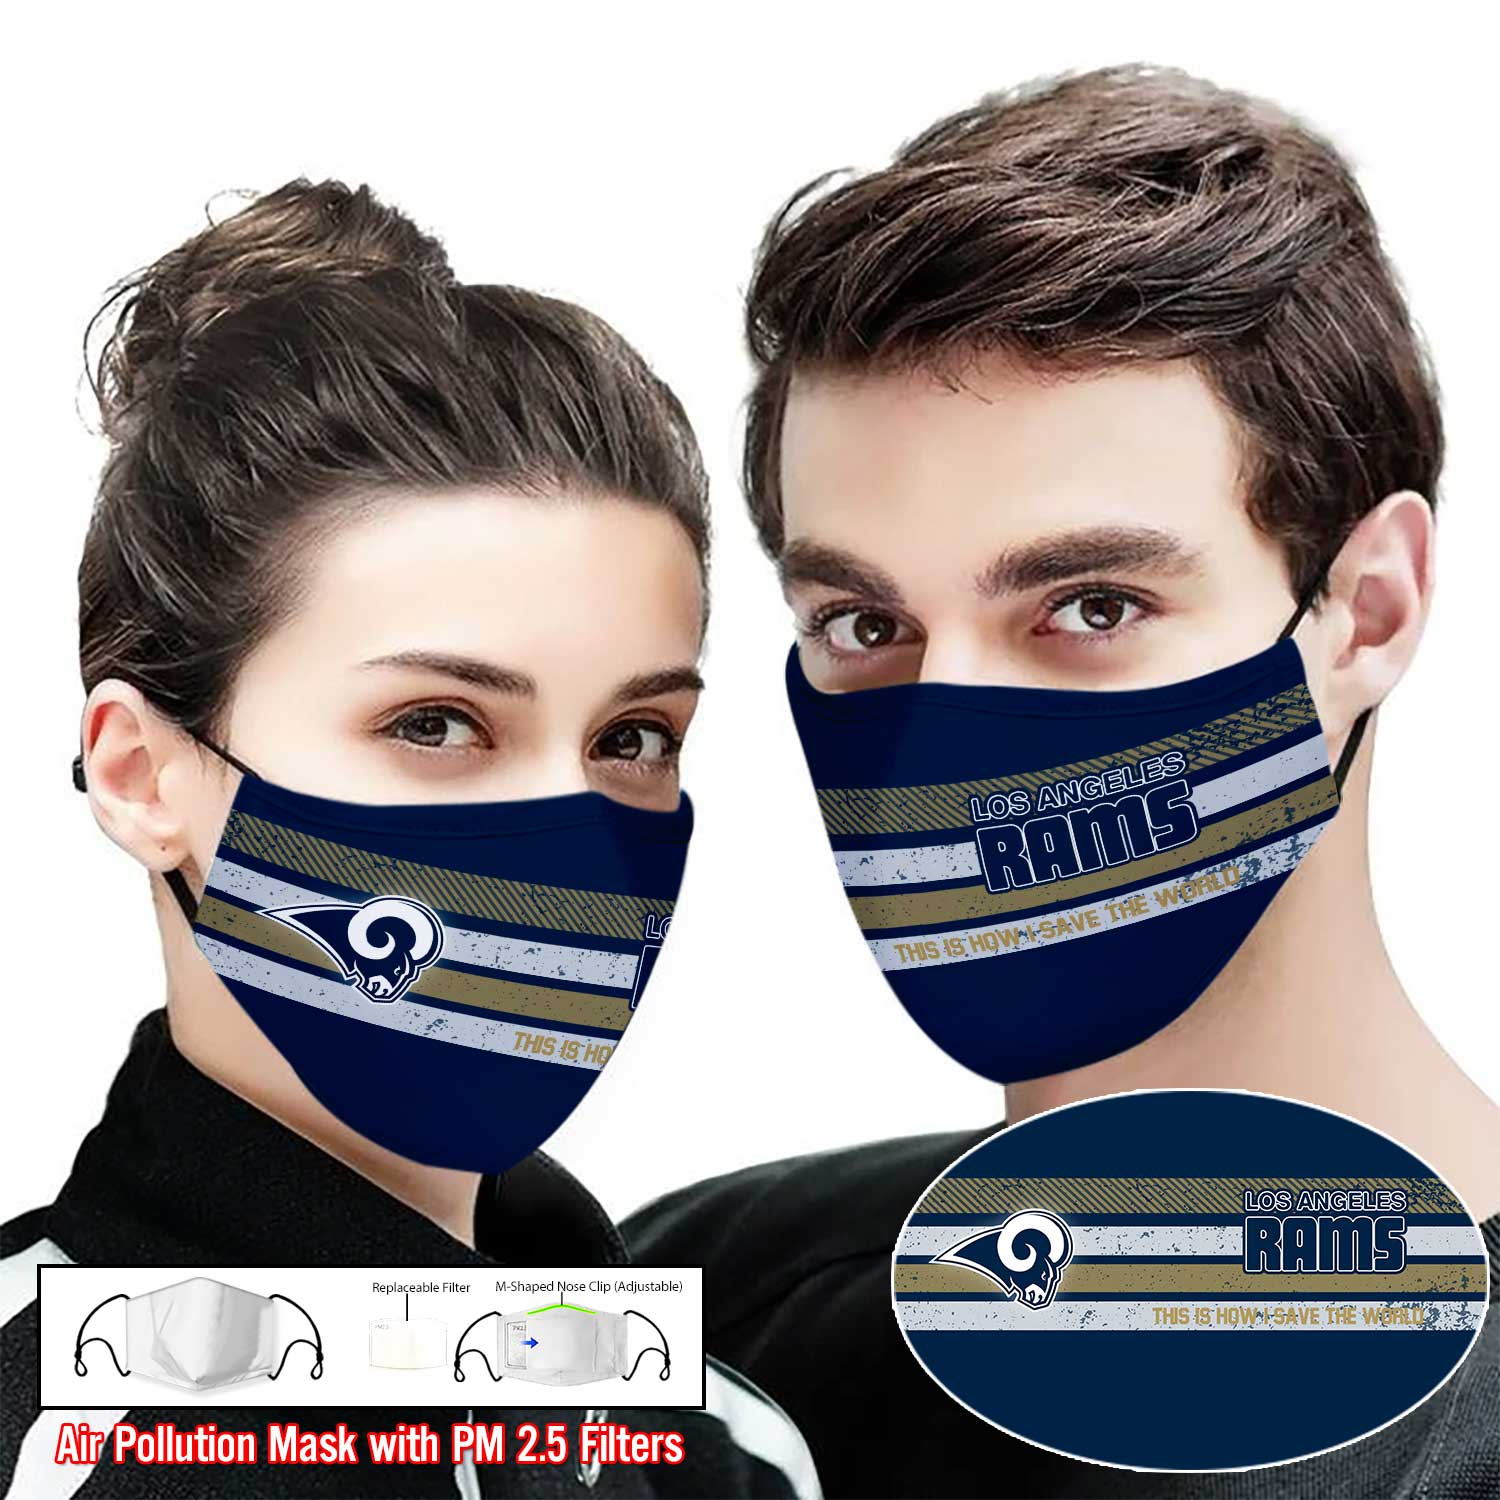 Los angeles rams this is how i save the world full printing face mask 1